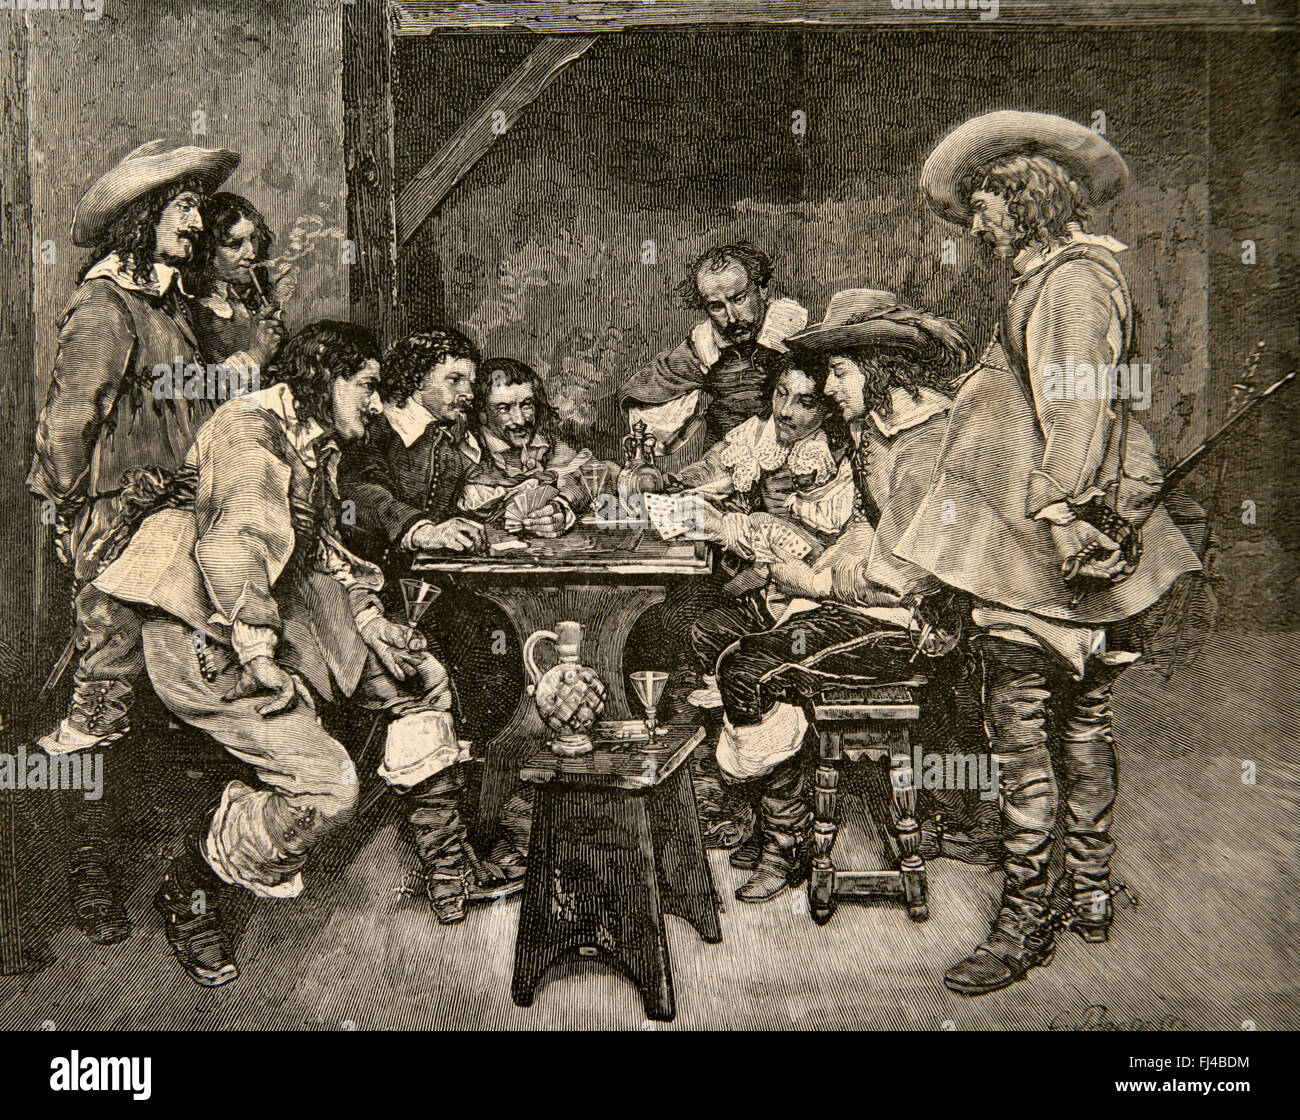 game of piquet 16th century engraving by c penoso after a